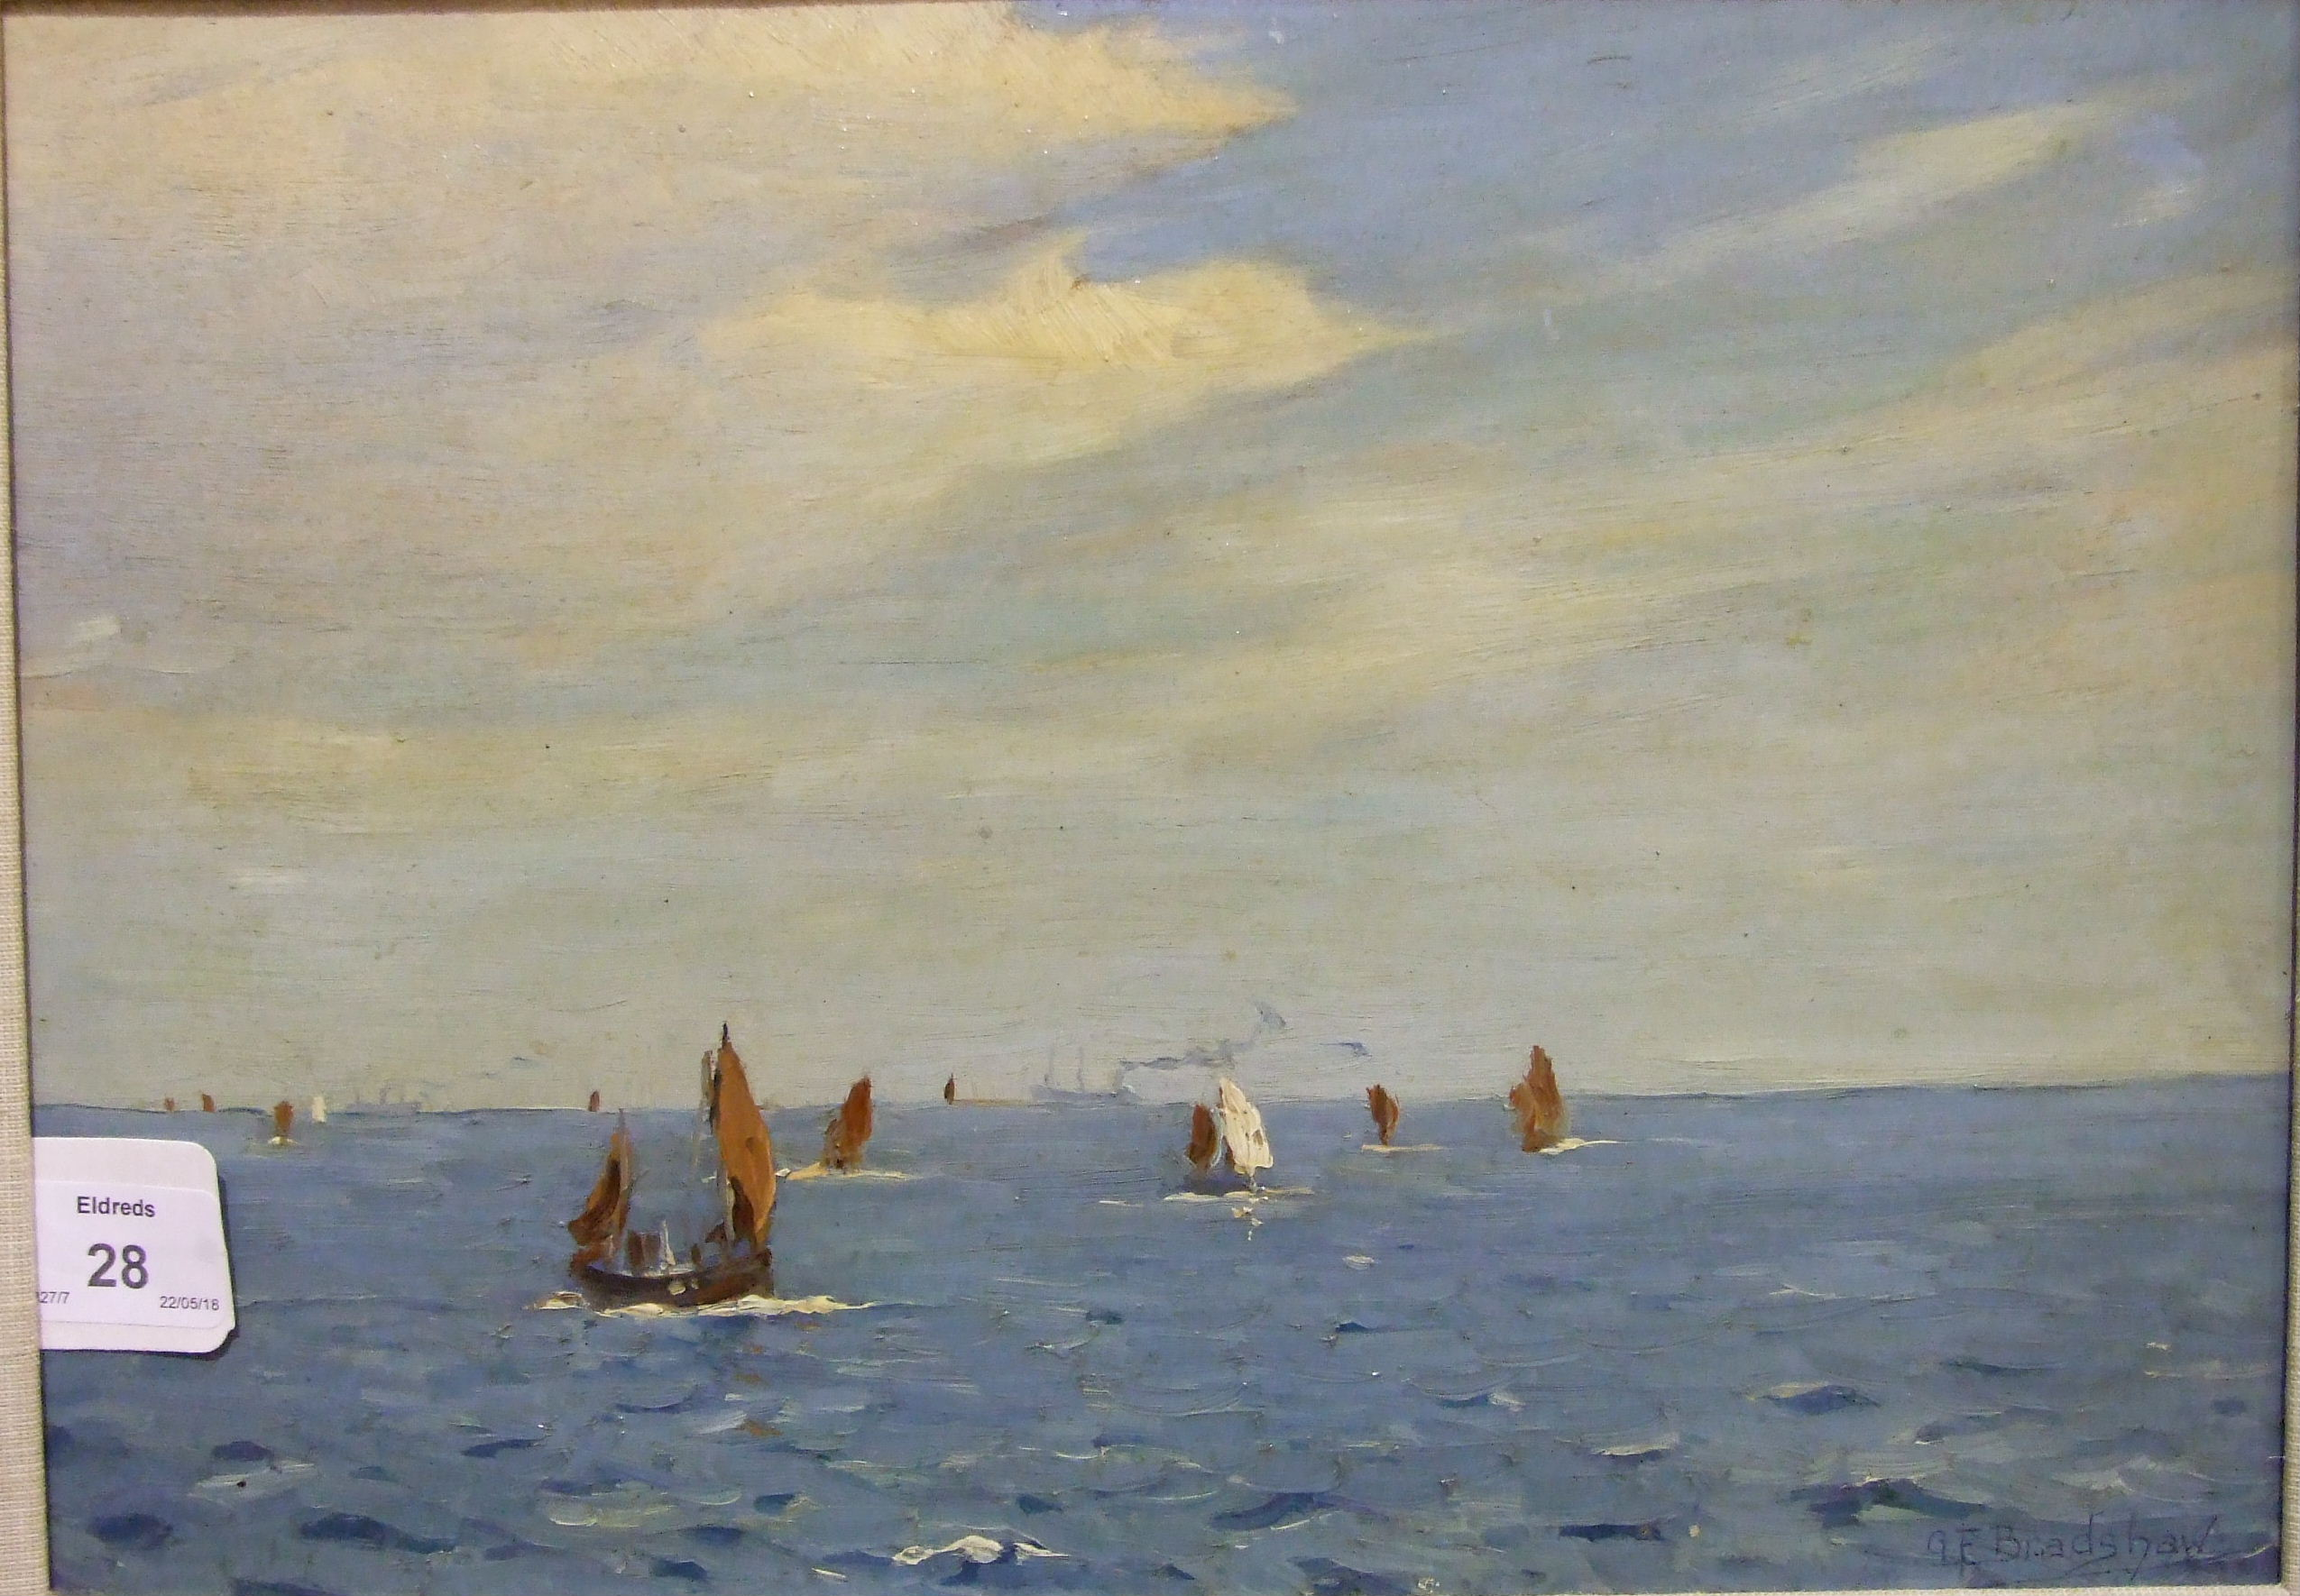 •George Fagan Bradshaw (1887-1960) FISHING BOATS AND VESSELS AT SEA Signed oil on board, 23.5 x